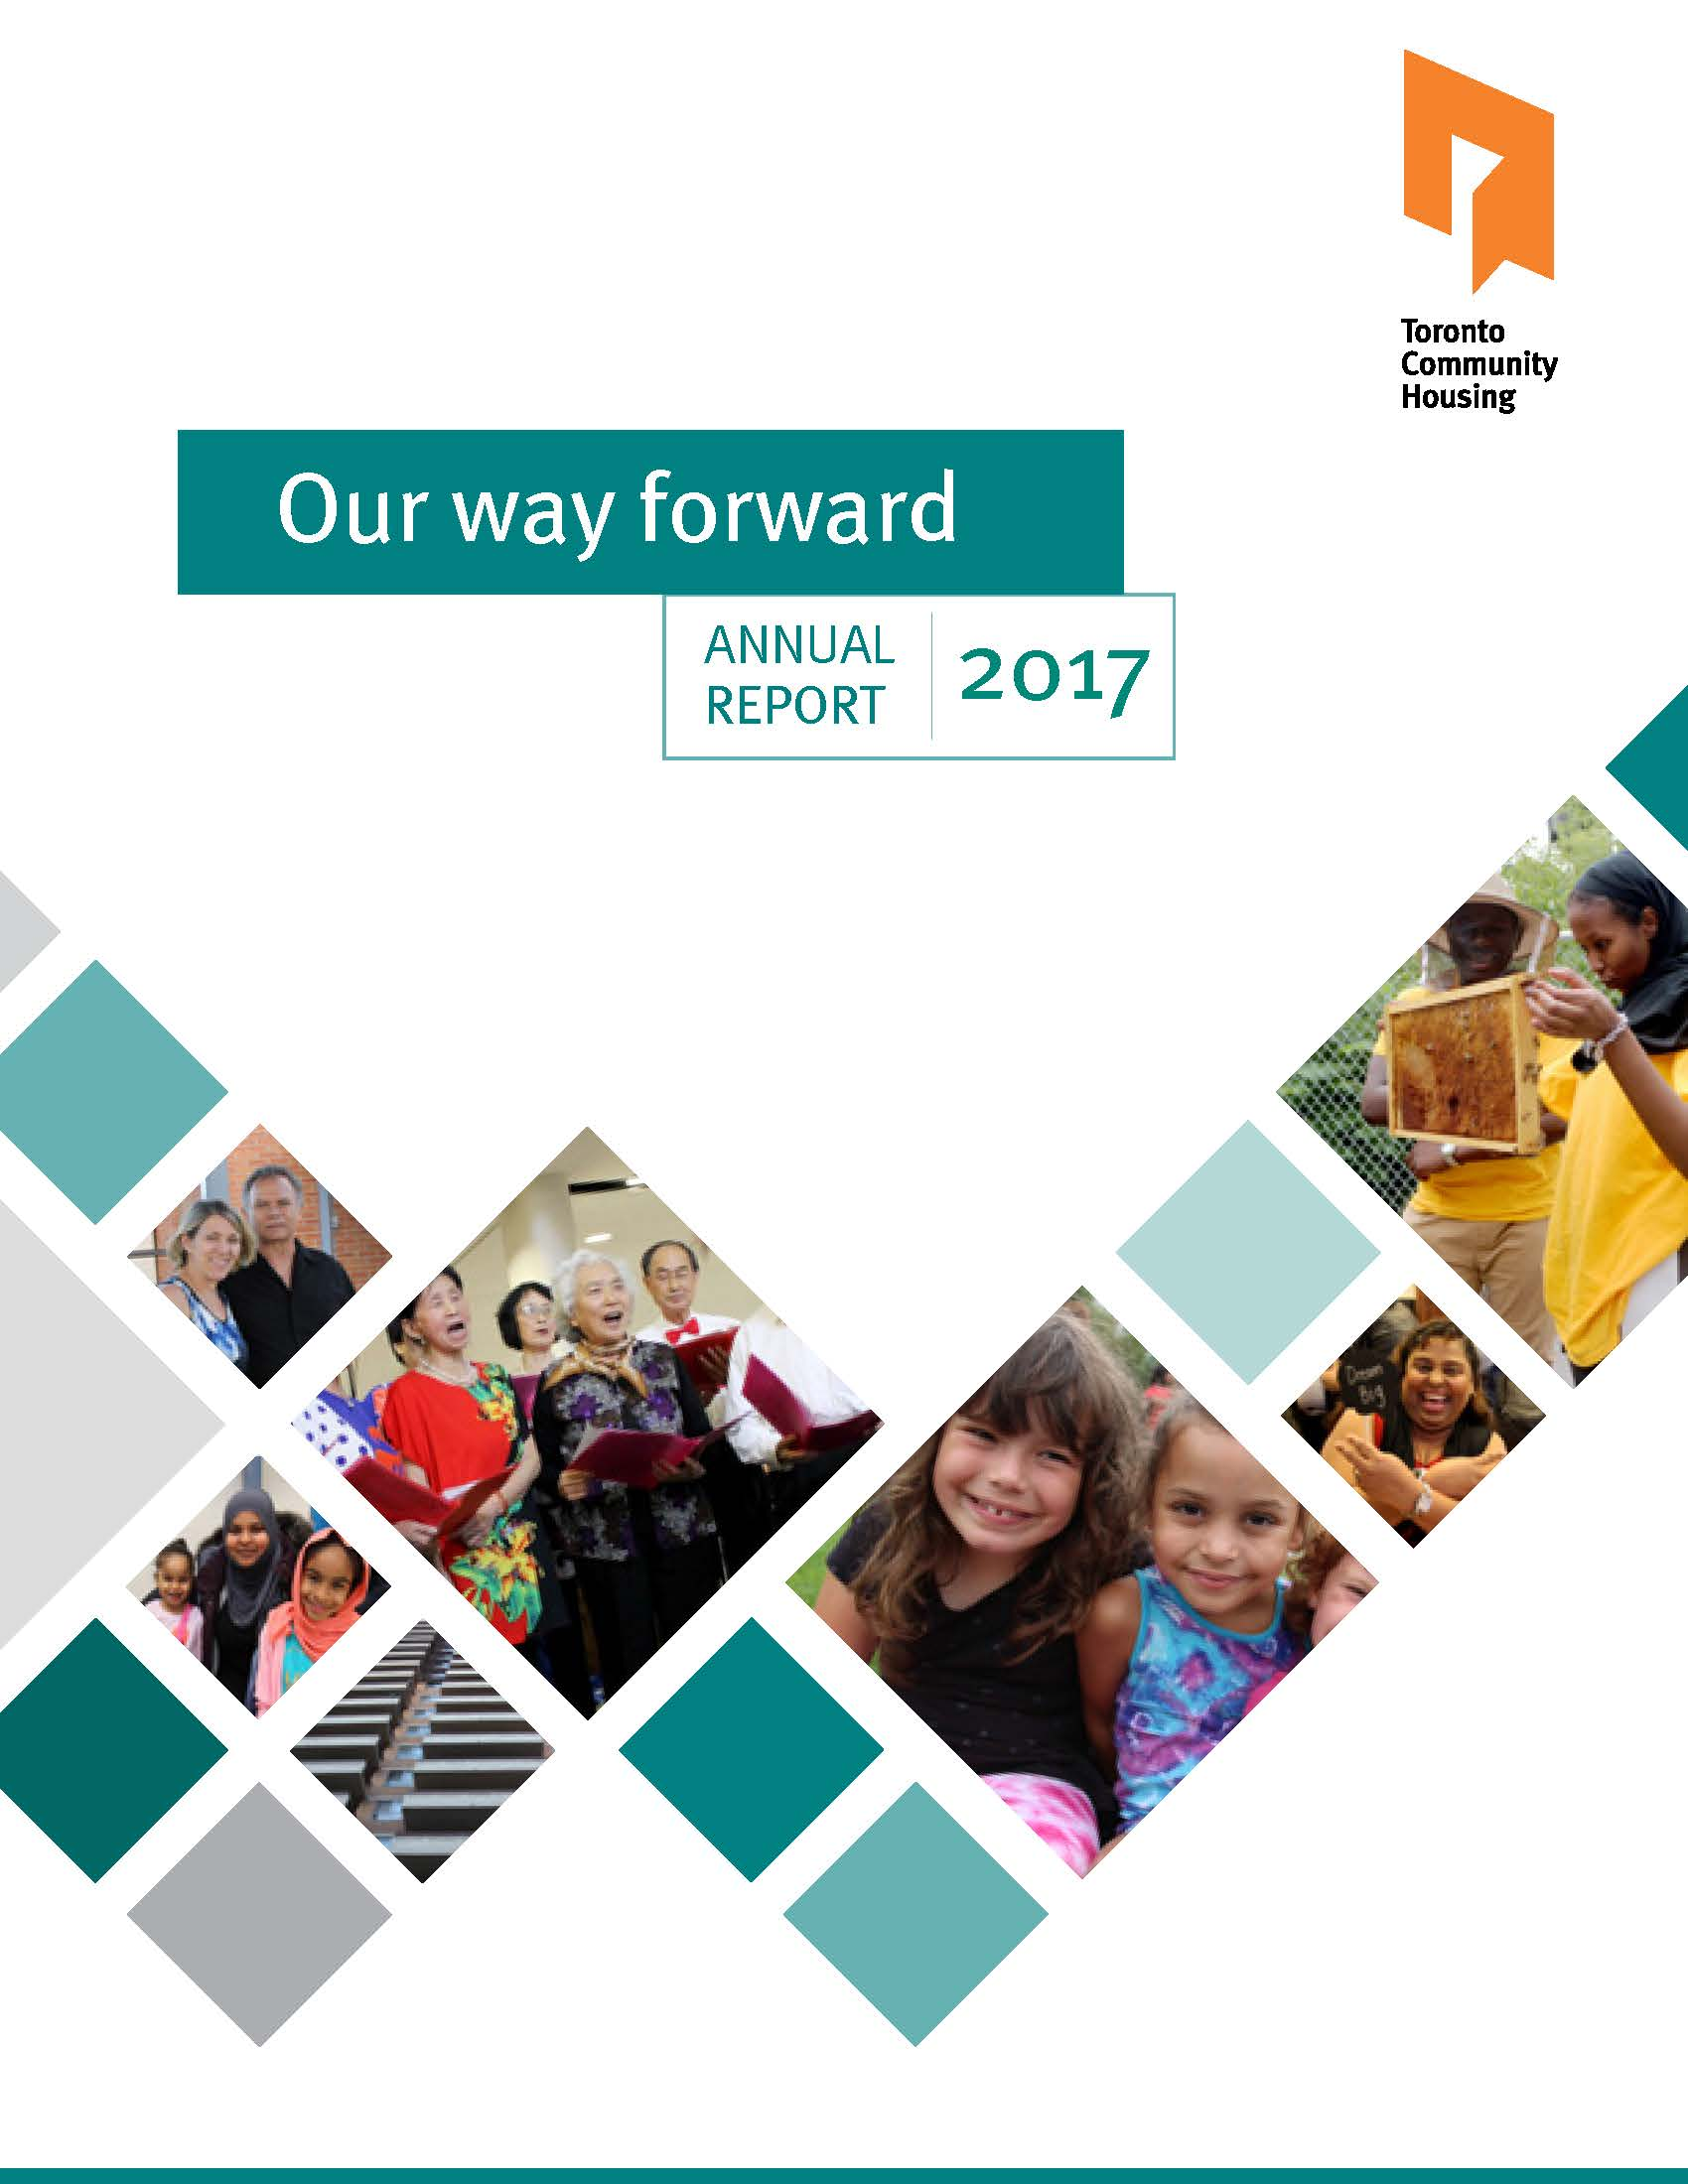 Cover of the 2017 Annual Report